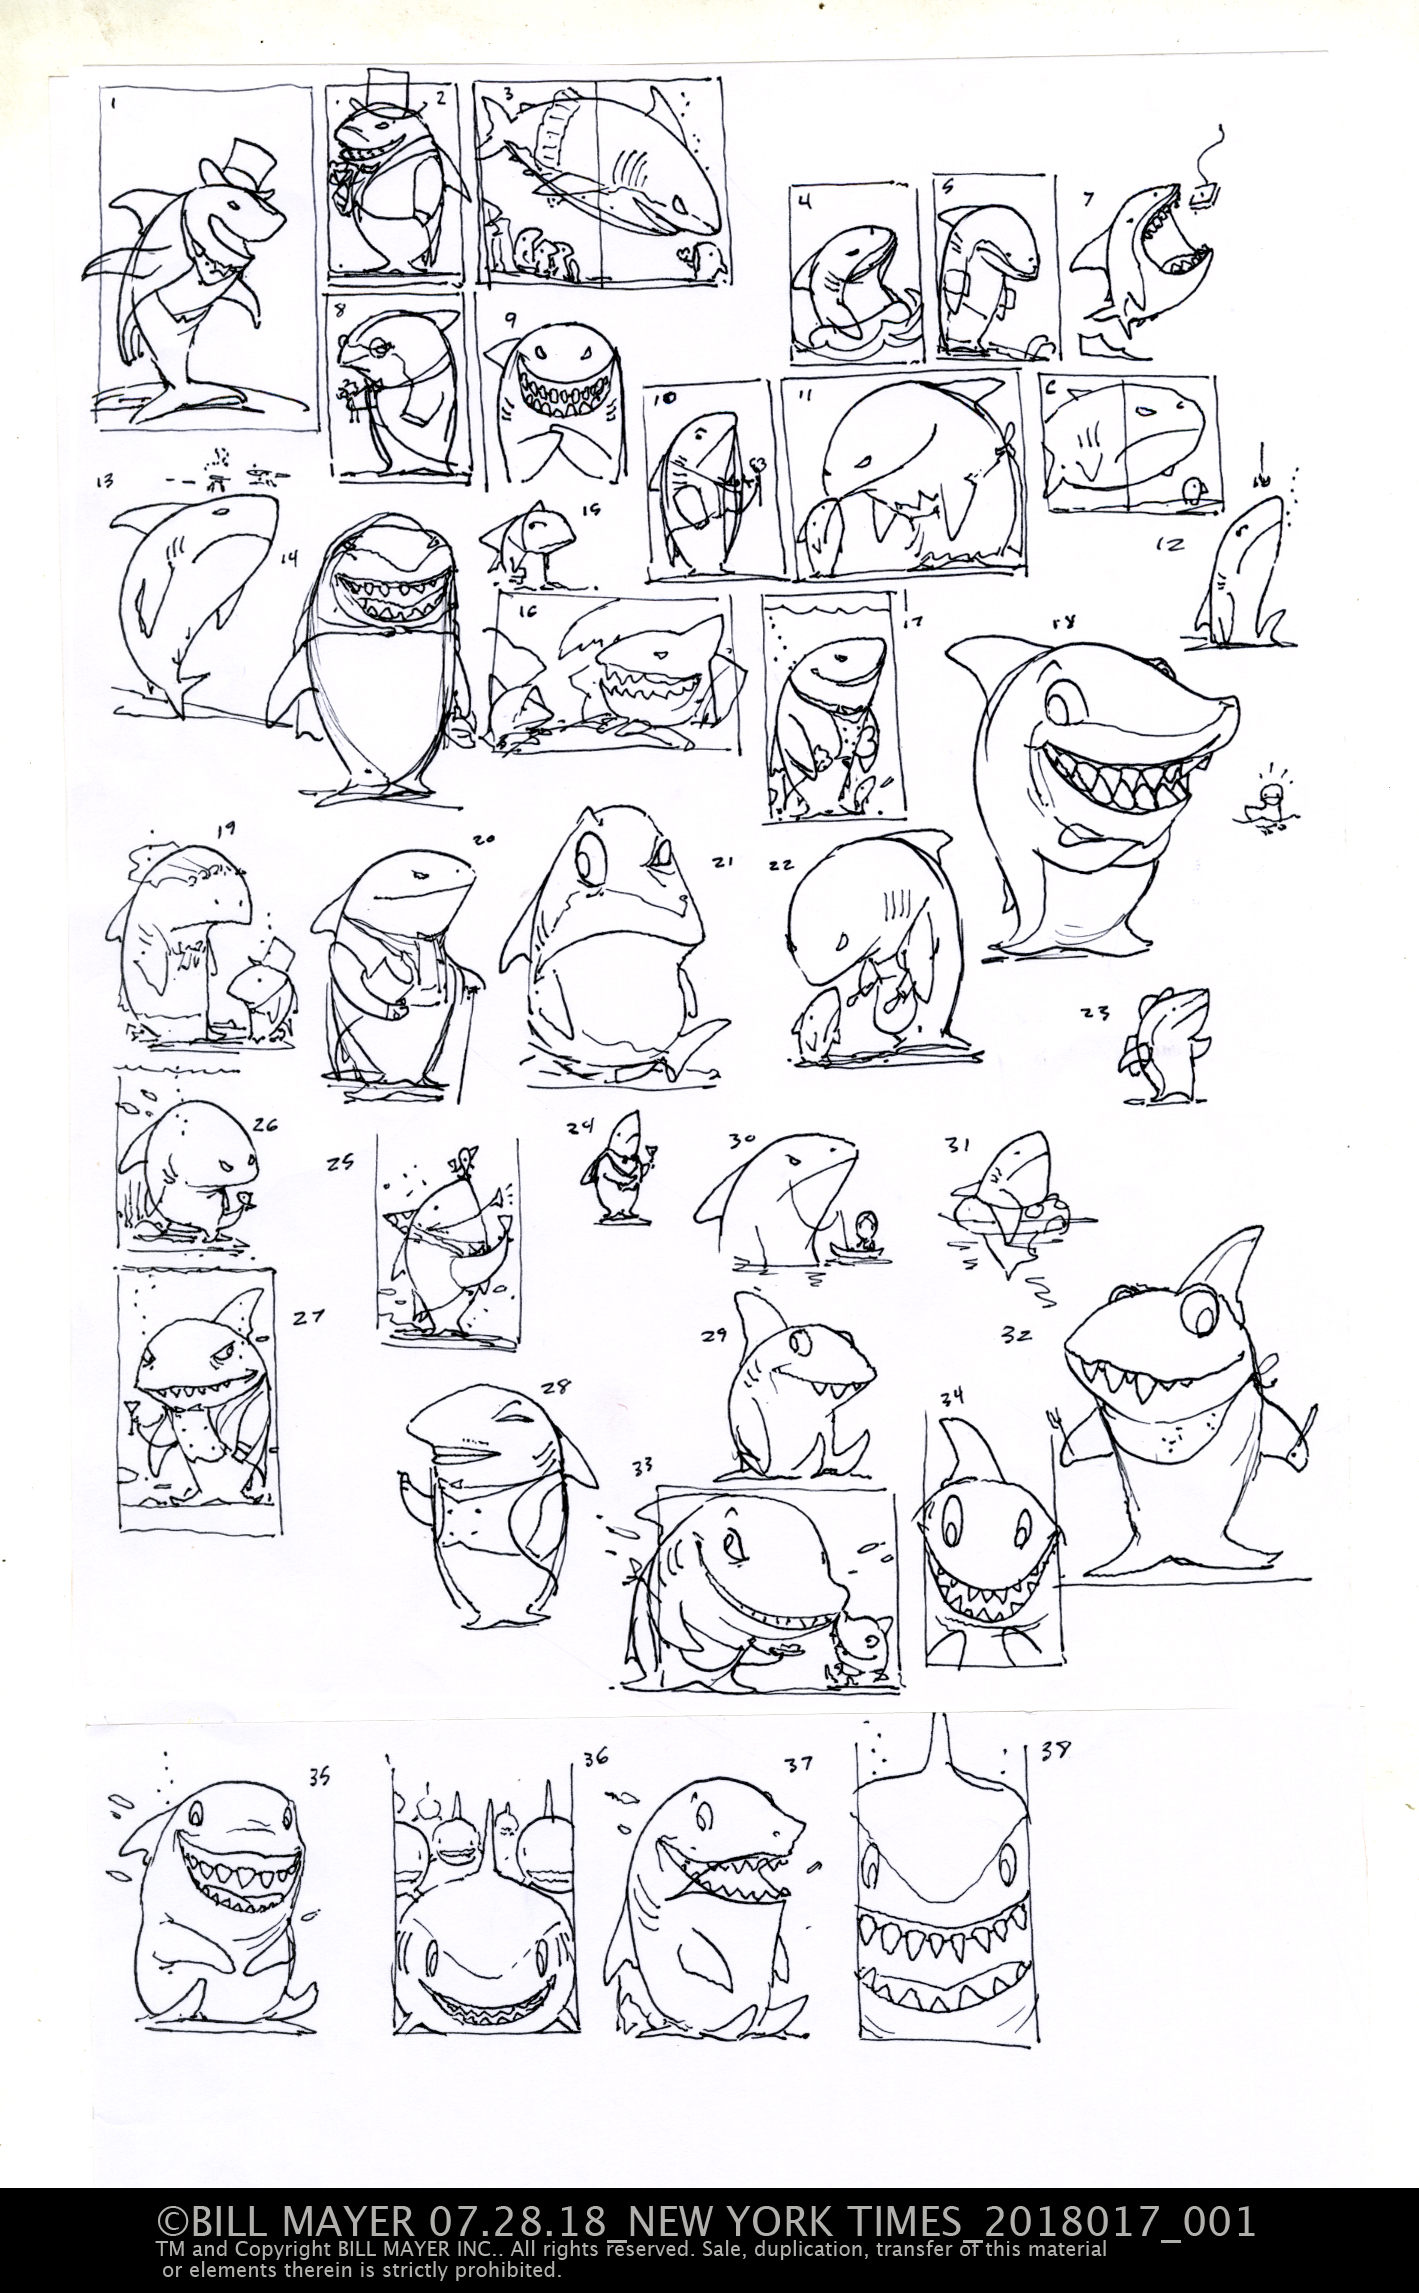 Thumbnails always start off in the same chaotic direction… So many ideas ,so many directions looking back at them alwys brings a smile and a thought of bringing another one to life.